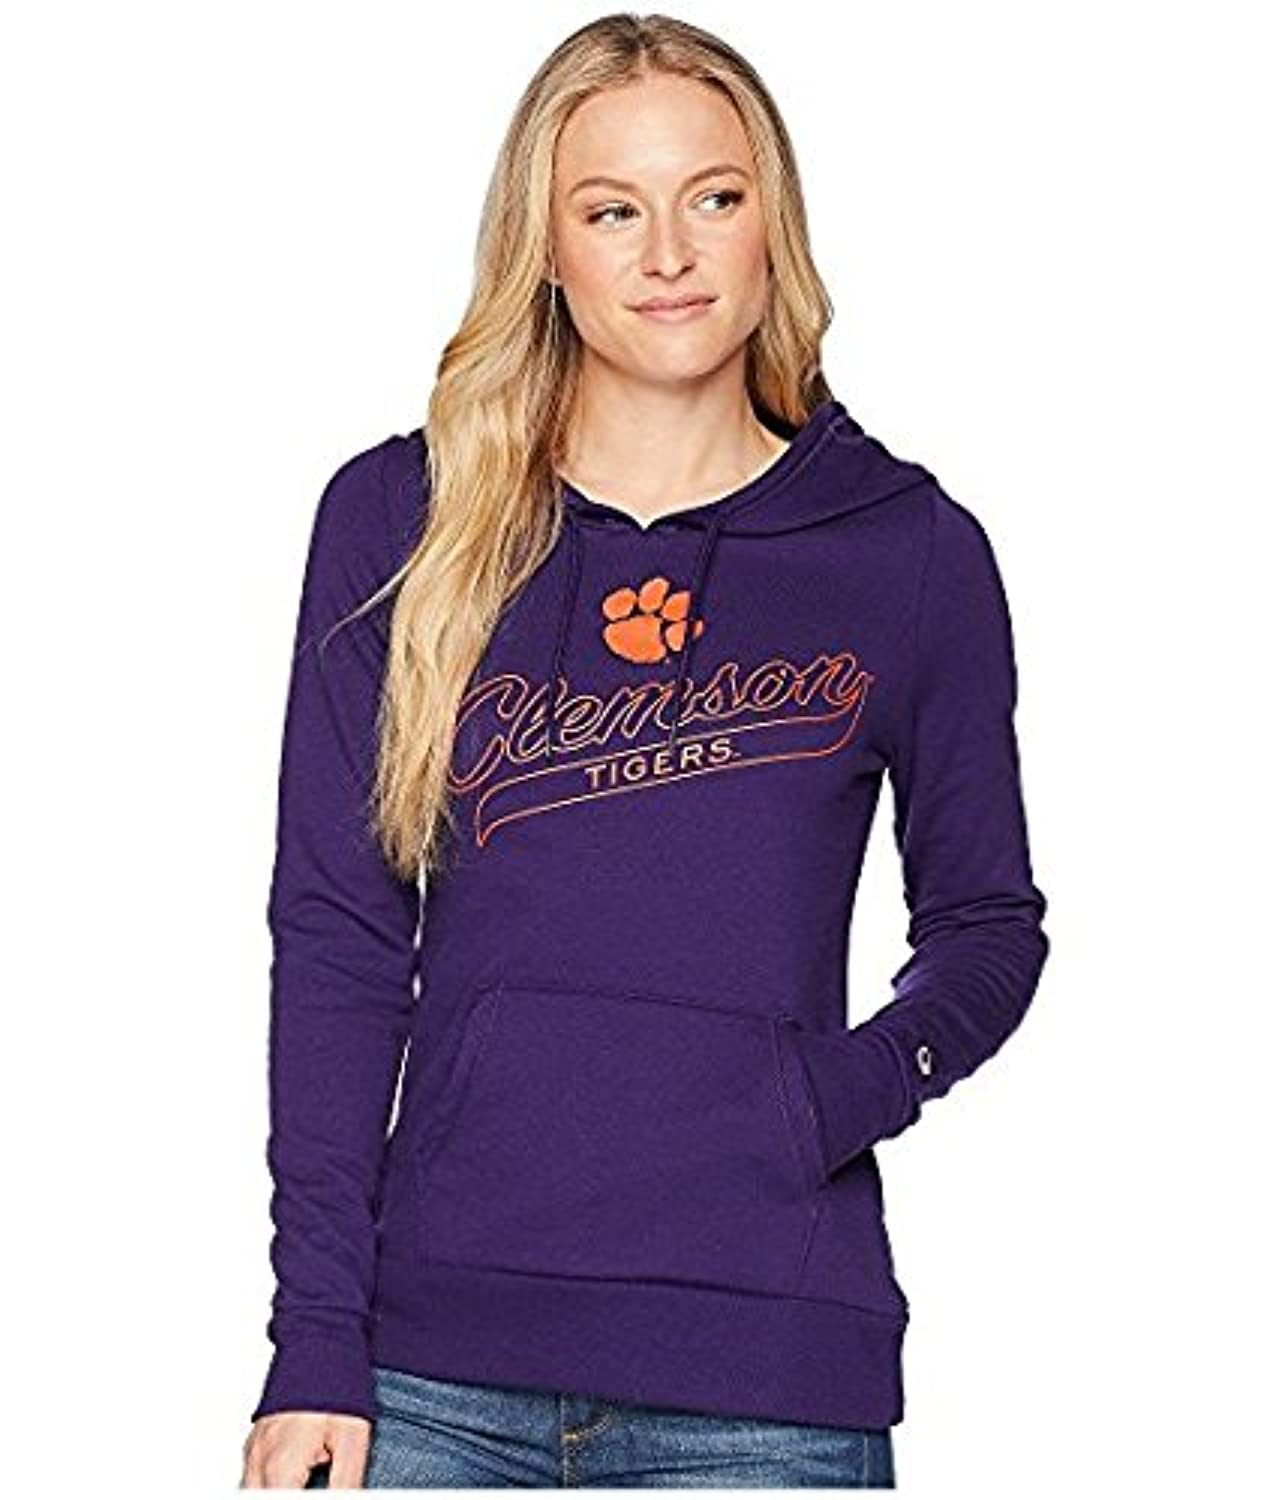 チャンピオン Champion College レディース パーカー スウェット Collegiate Purple Clemson Tigers Eco Univer LG Collegiate Purple [並行輸入品]